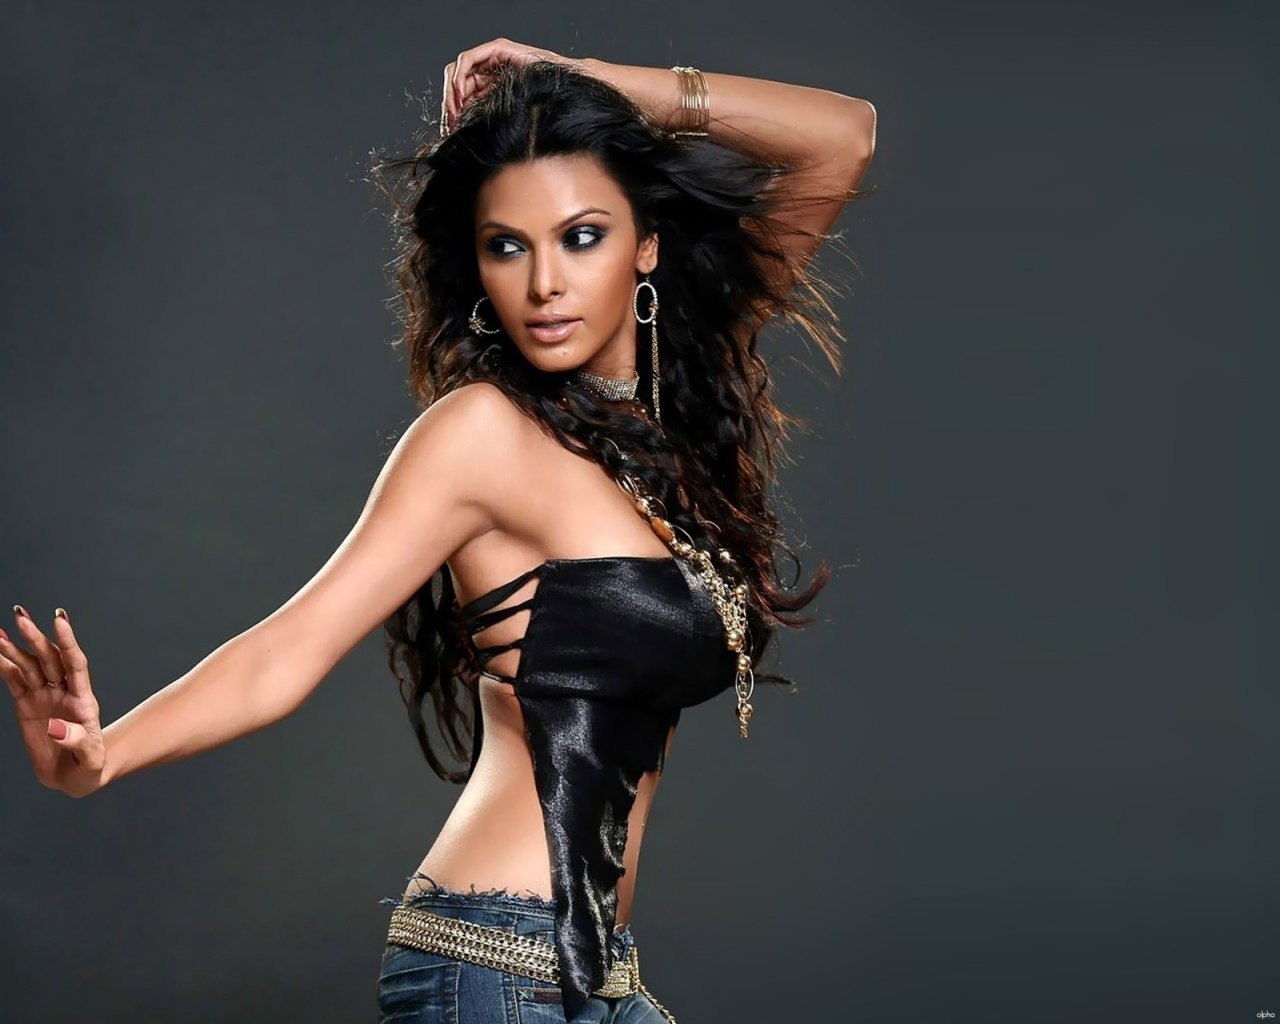 Malvika Rallan Backgrounds, Compatible - PC, Mobile, Gadgets| 1280x1024 px